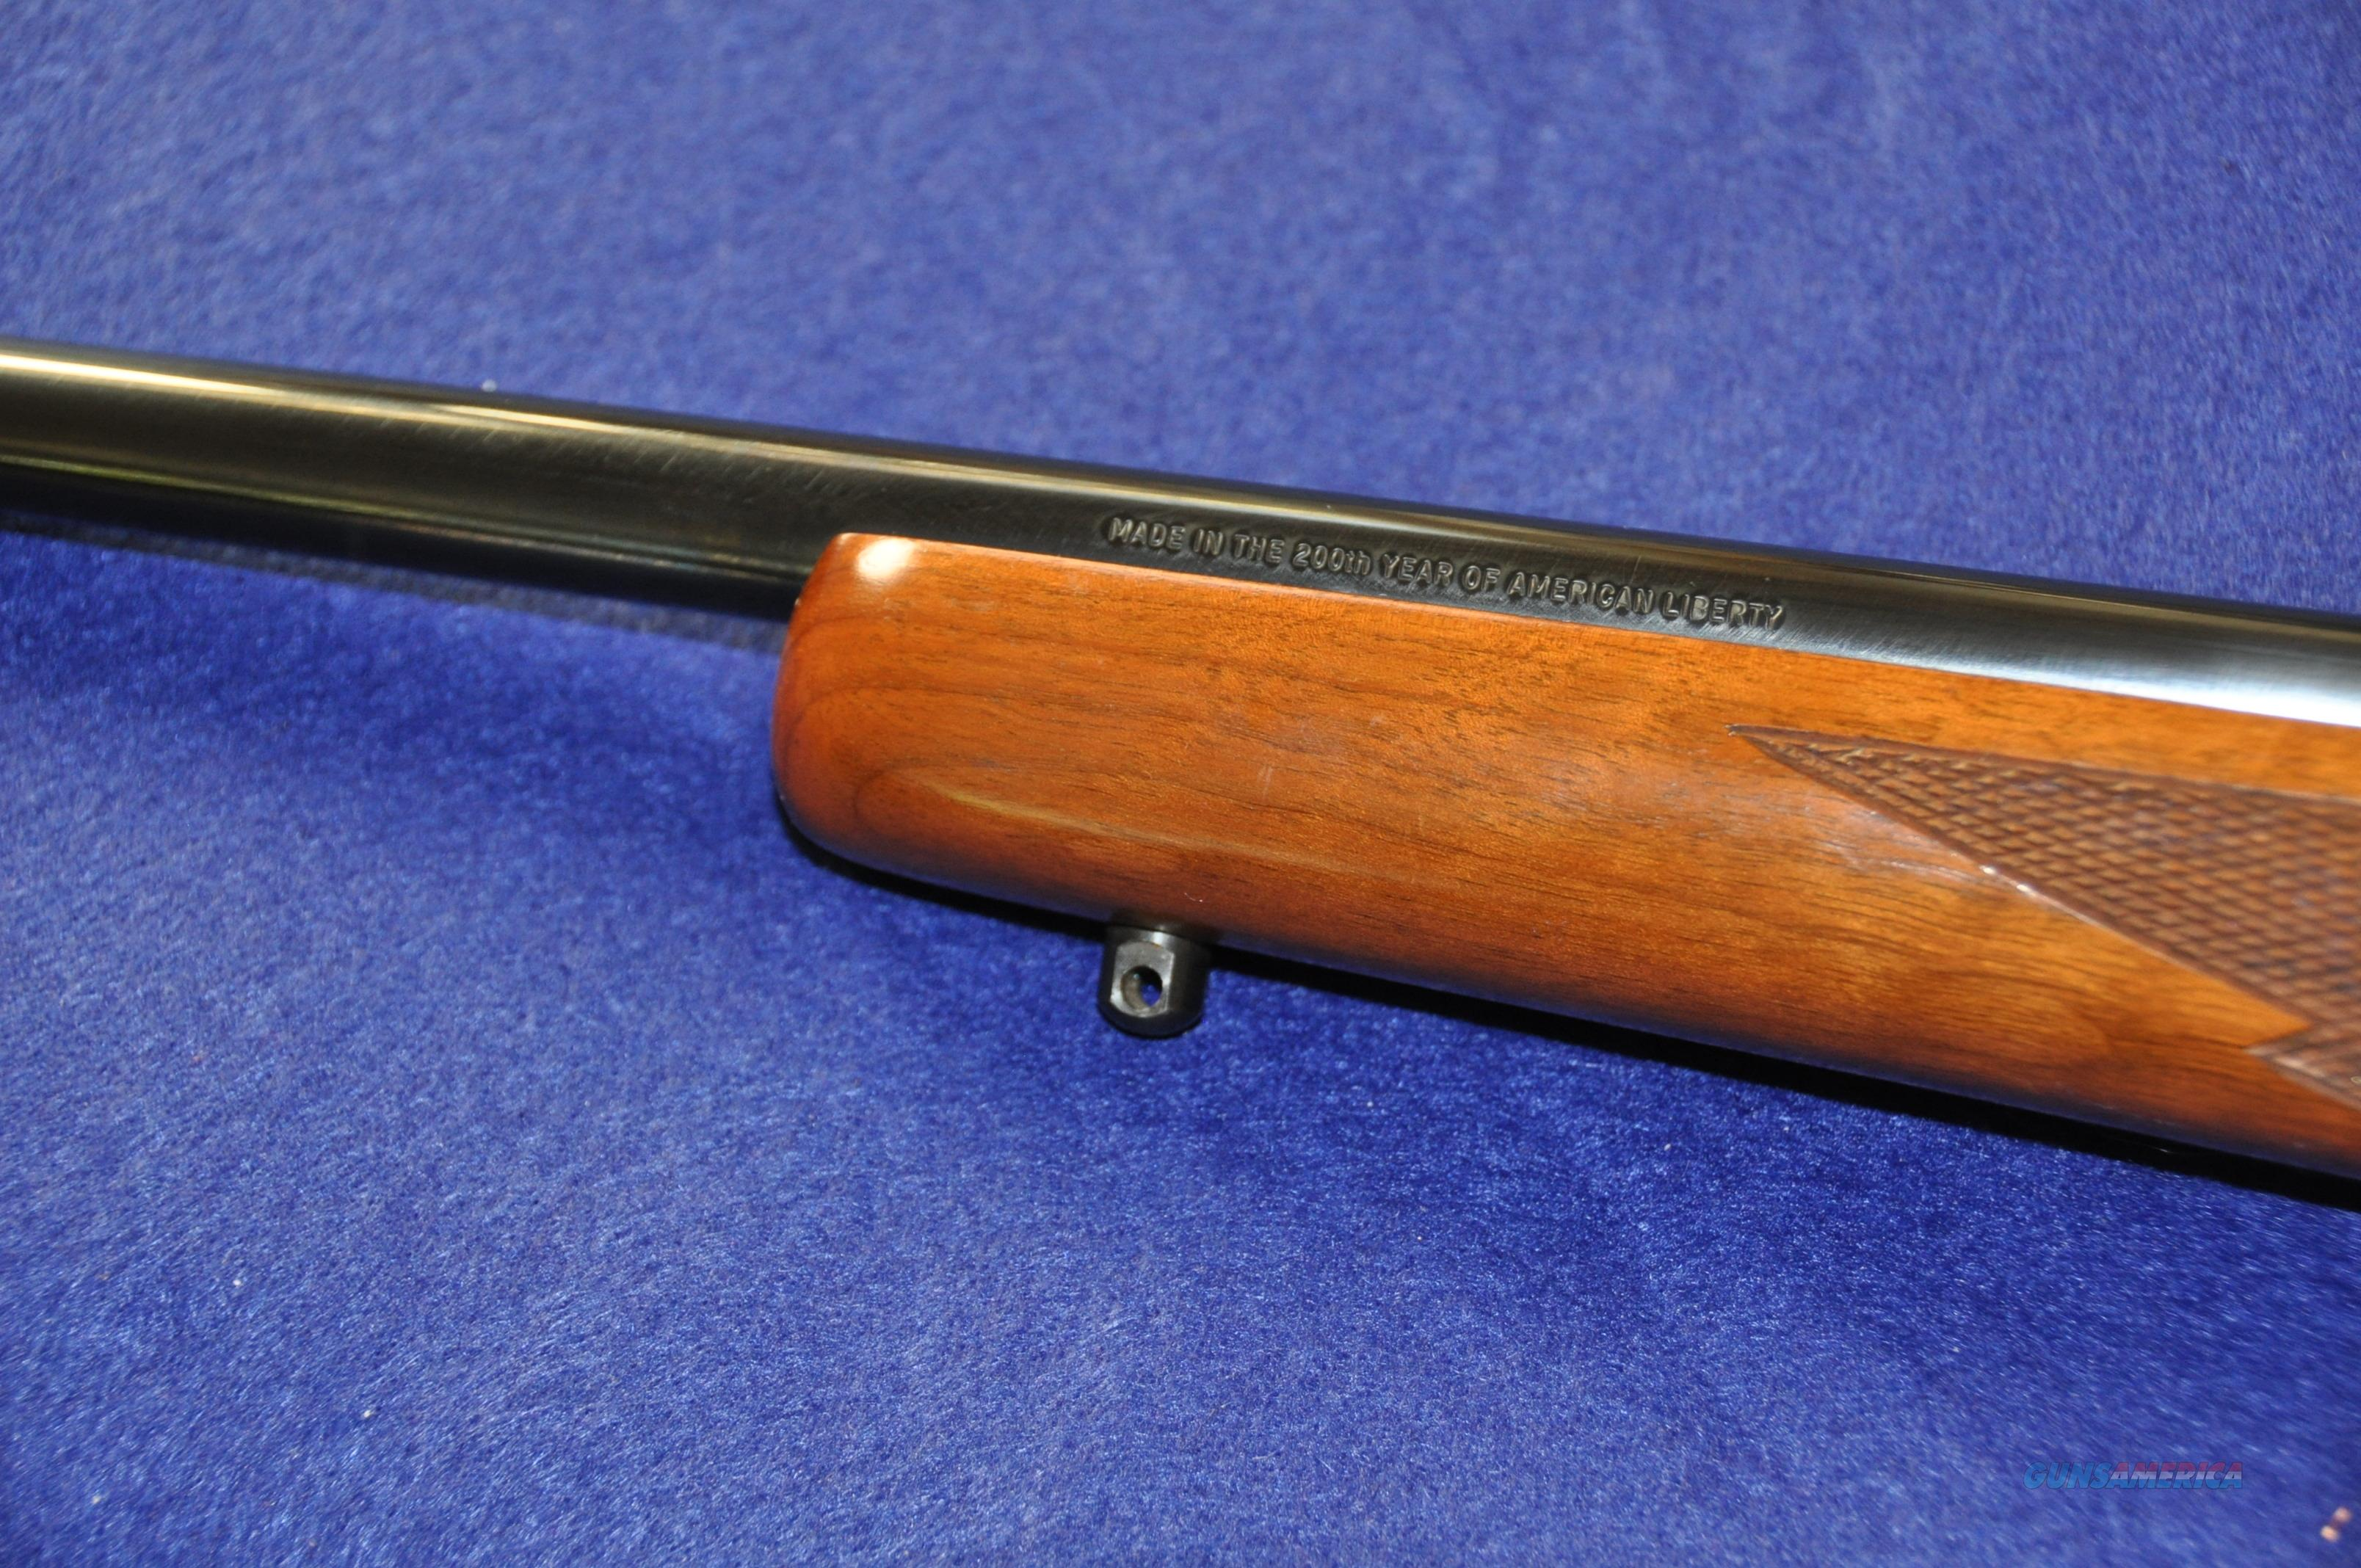 Ruger 77 200th year, tang safety, 220 swift, sporter barrel and Timney trigger  Guns > Rifles > Ruger Rifles > Model 77